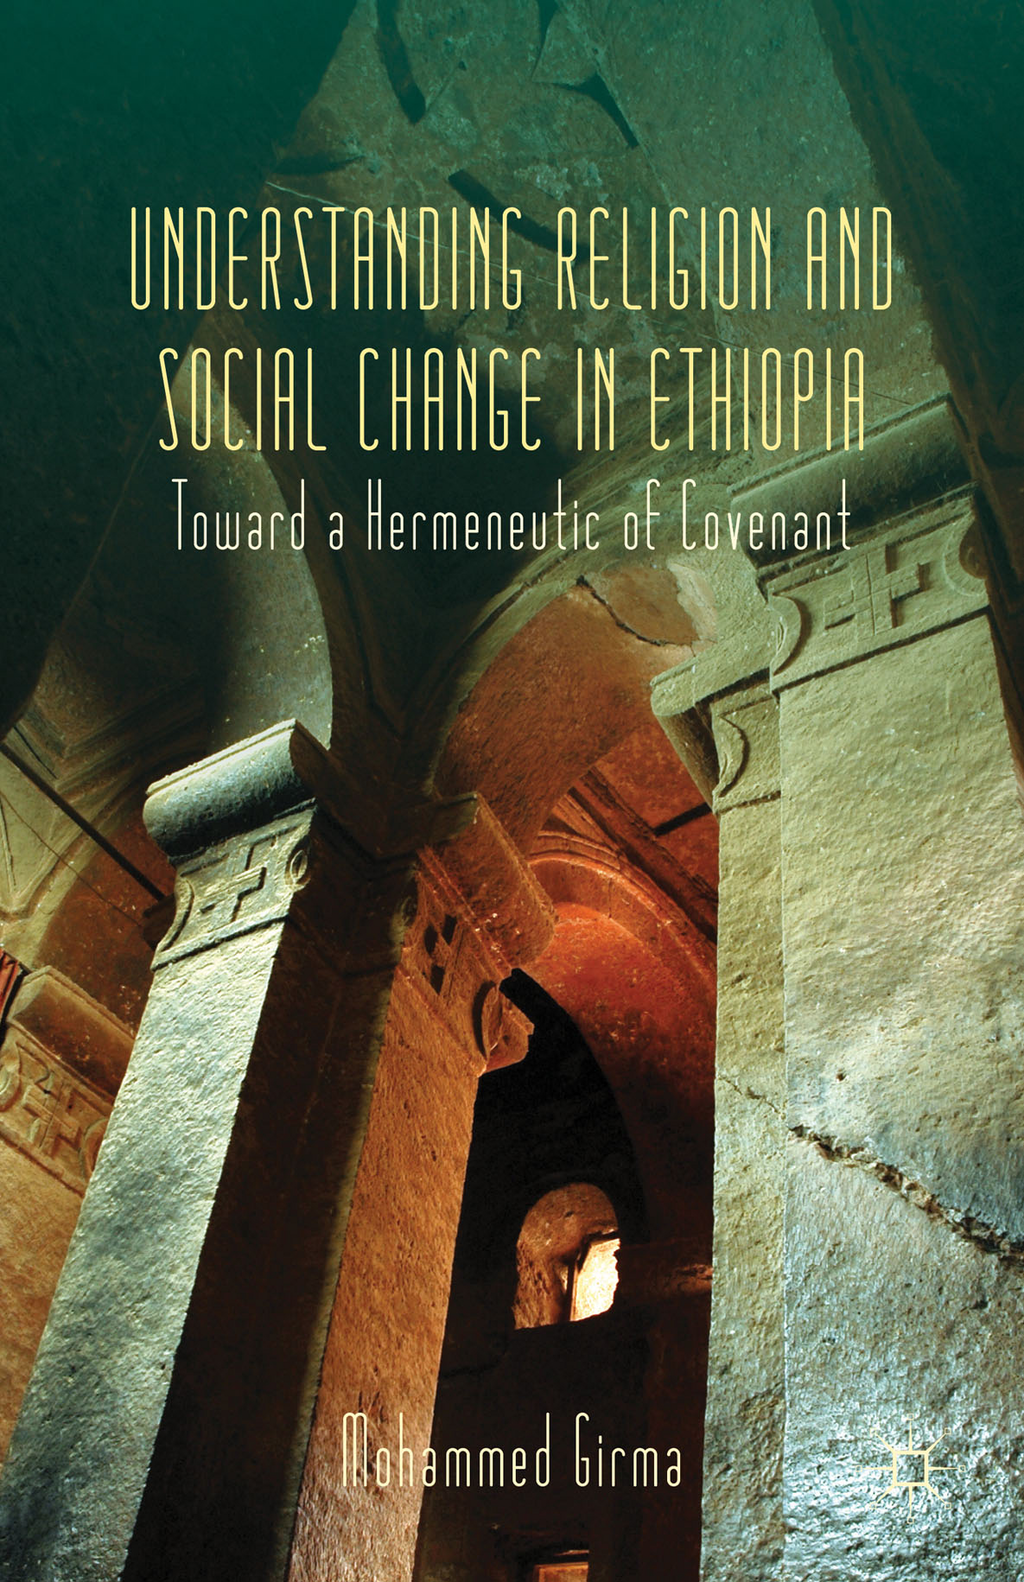 Understanding Religion and Social Change in Ethiopia Toward a Hermeneutic of Covenant